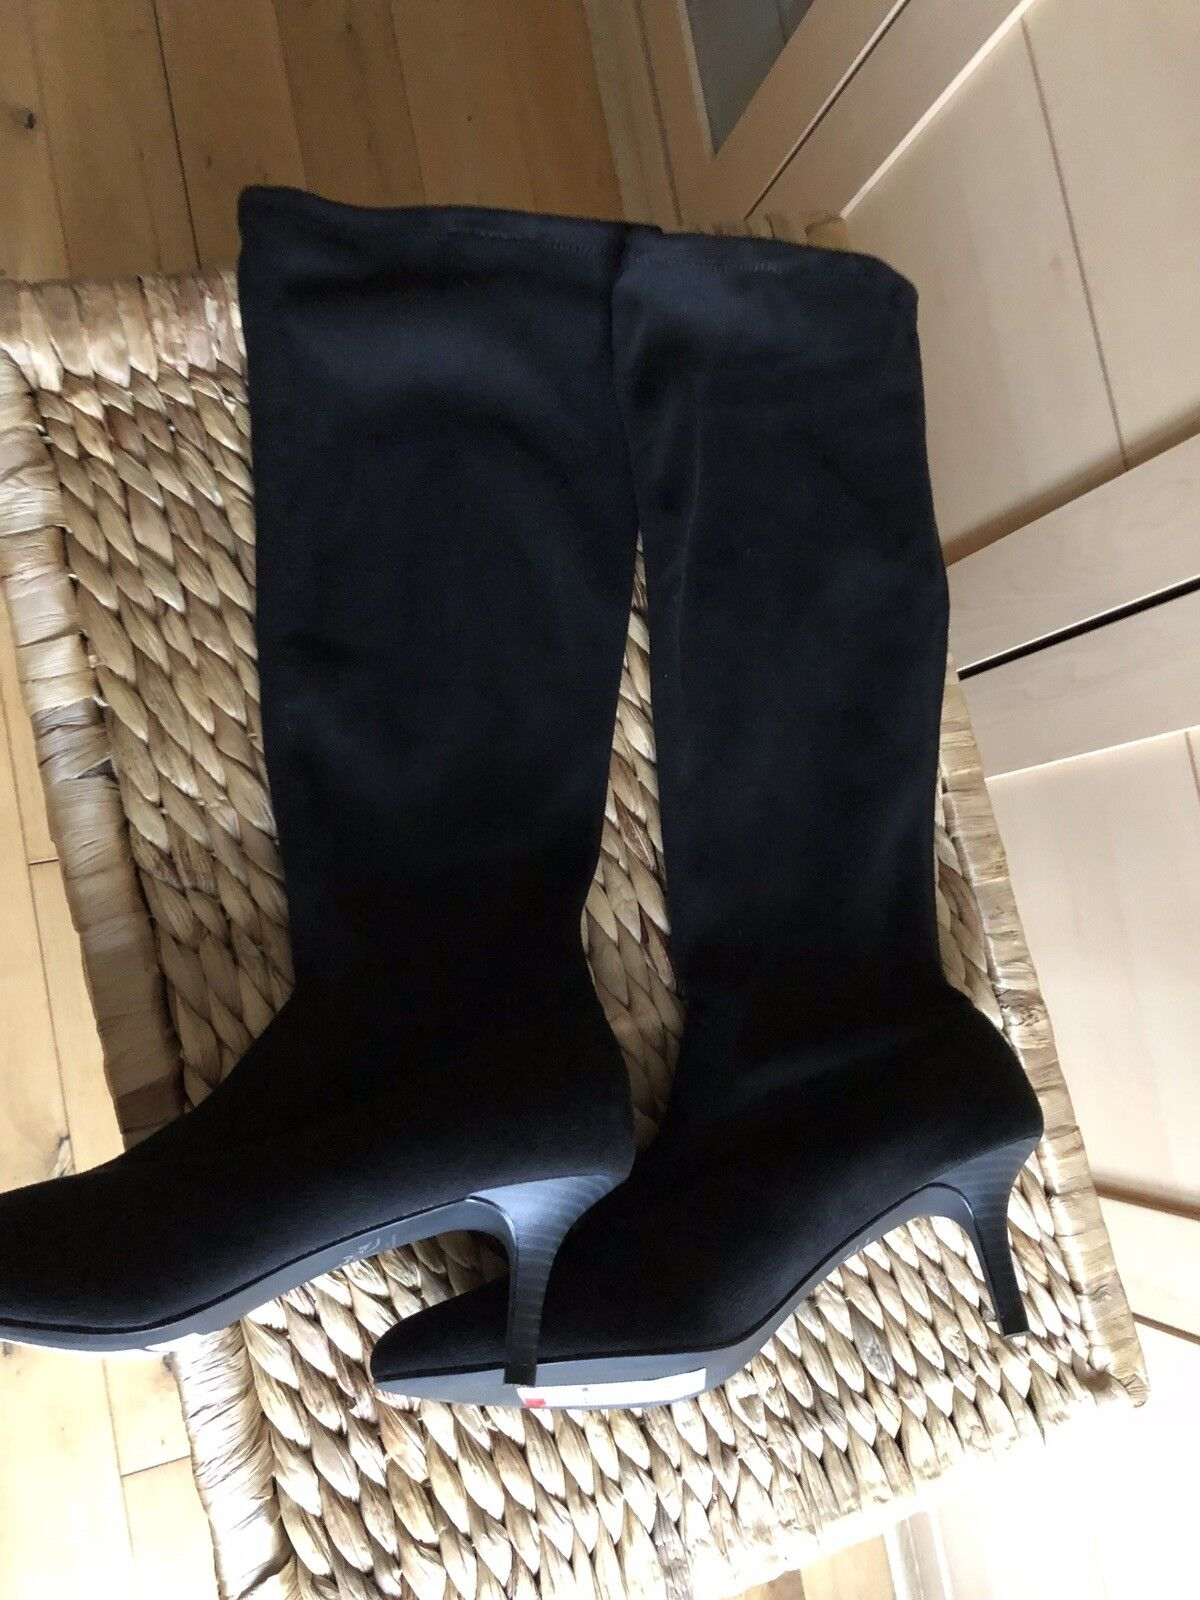 M&S insolia boots pull on suede